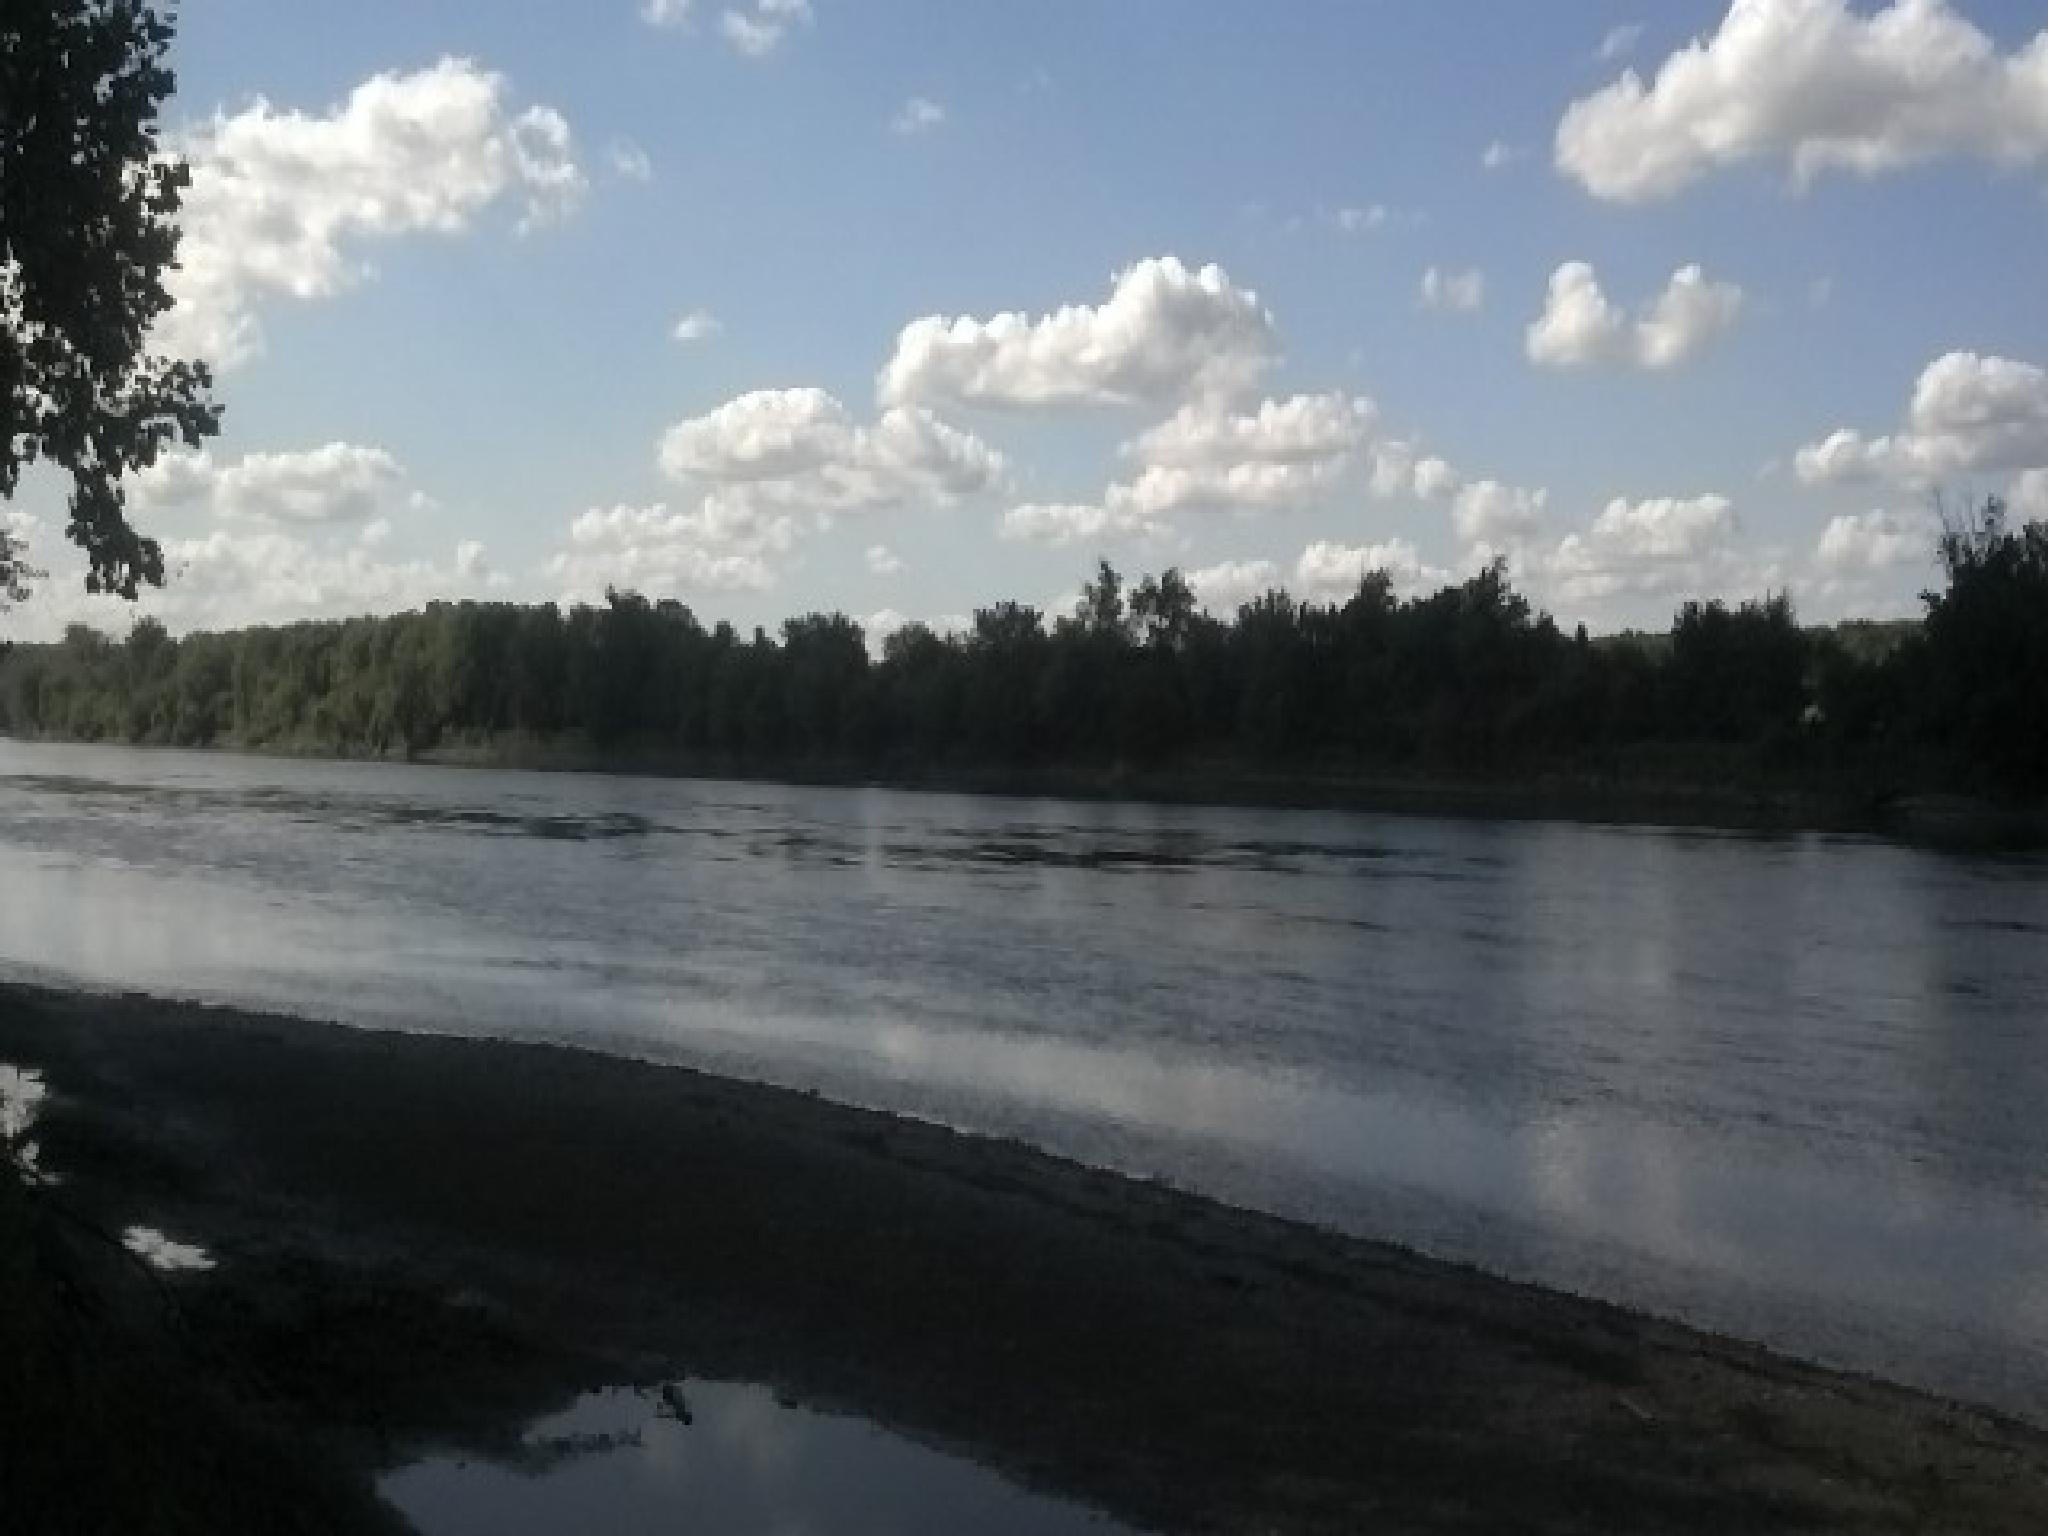 Des Moines River, Missouri by cathy.pepe.9